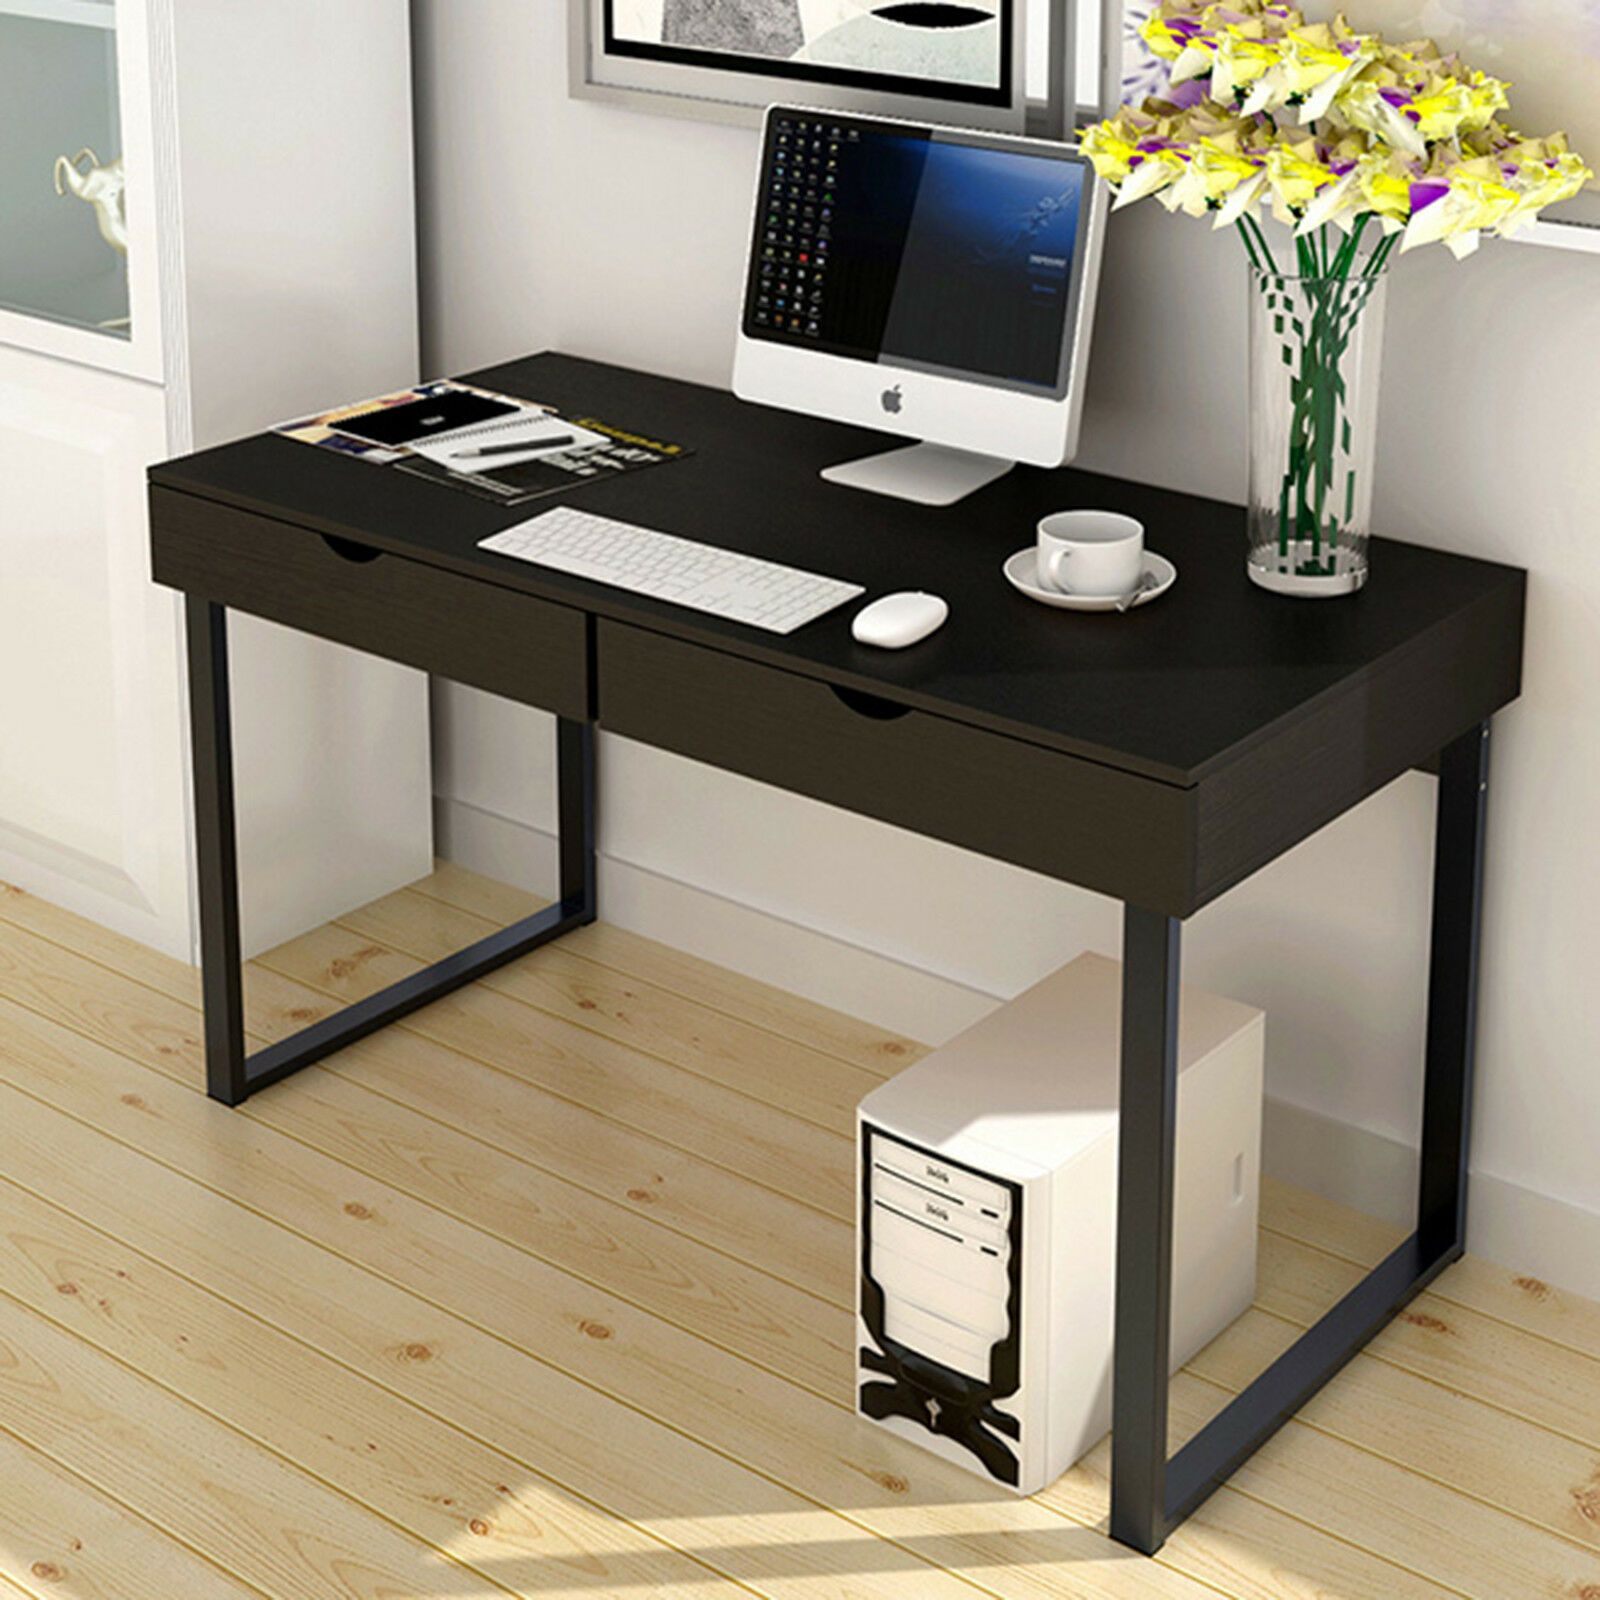 Black Computer Desk Study Table Pc Laptop Workstation Home Office Furniture Wood Workstation Offi Computer Desks For Home Oak Computer Desk Desk With Drawers